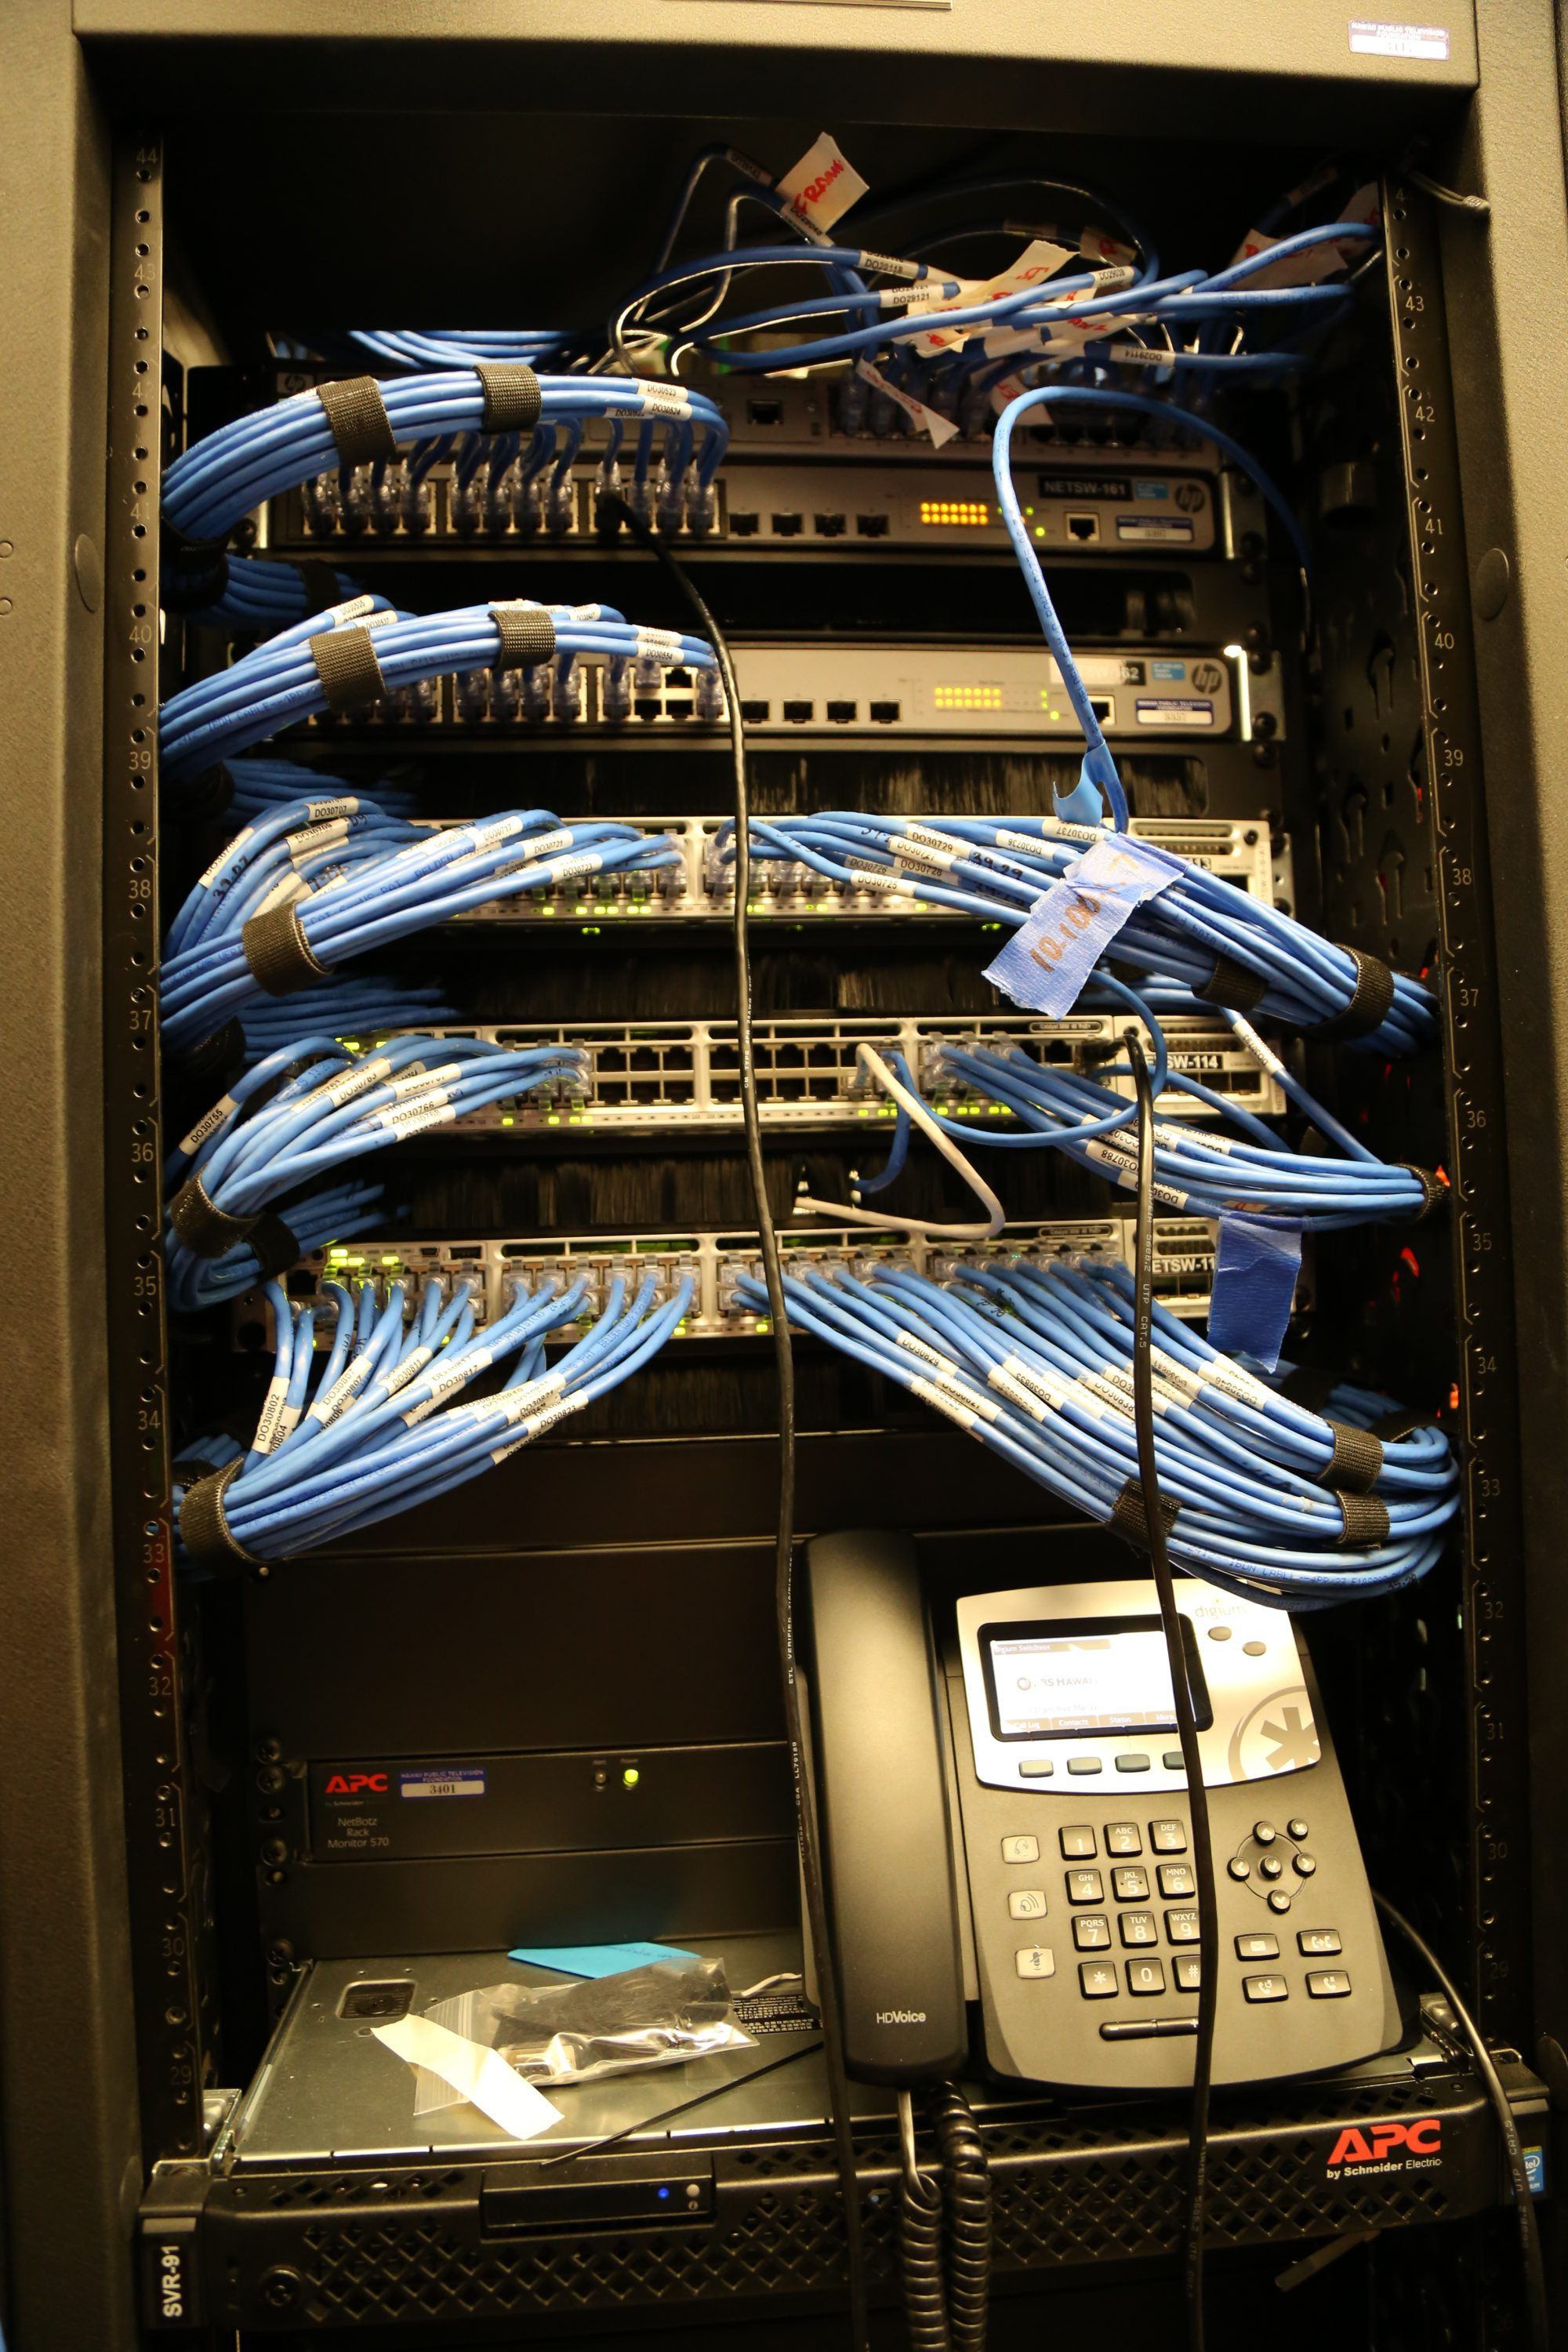 Digium PBX and Cabling